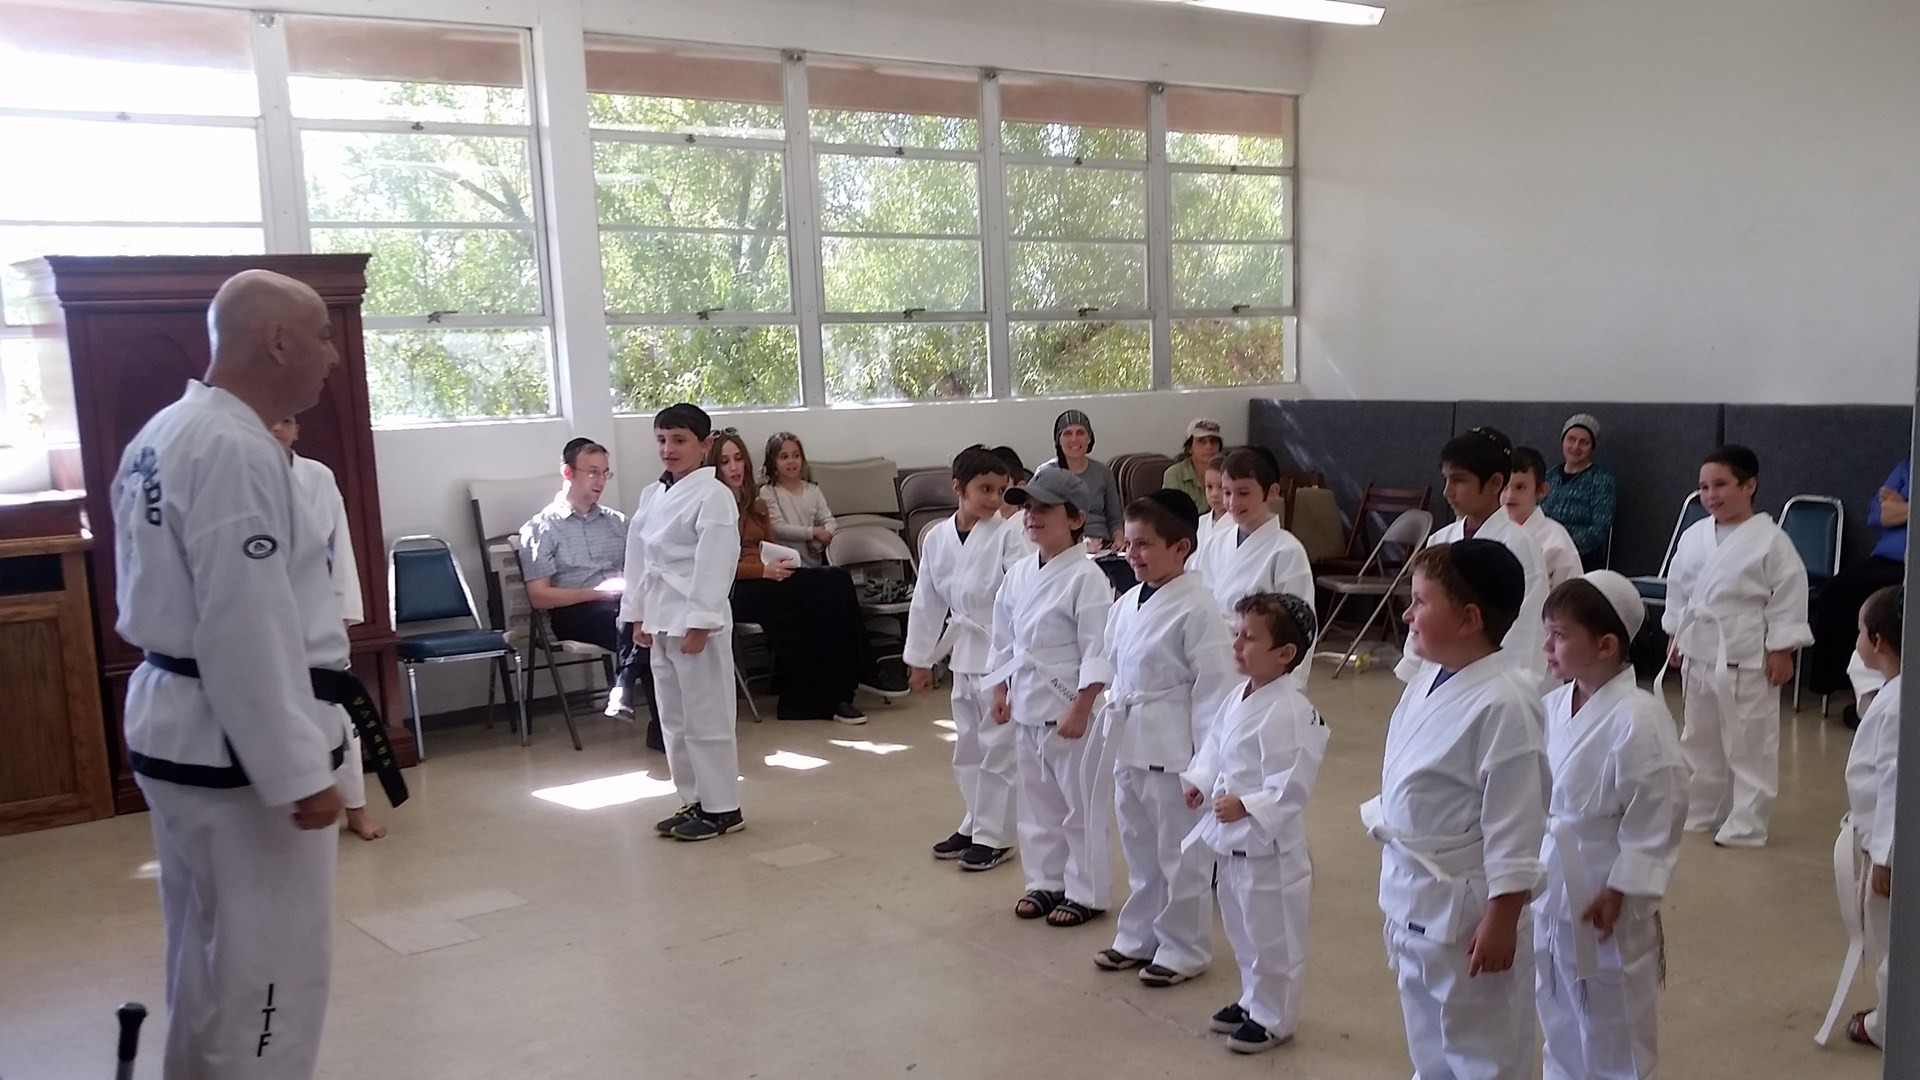 taekwondo class at torah day school of phoenix